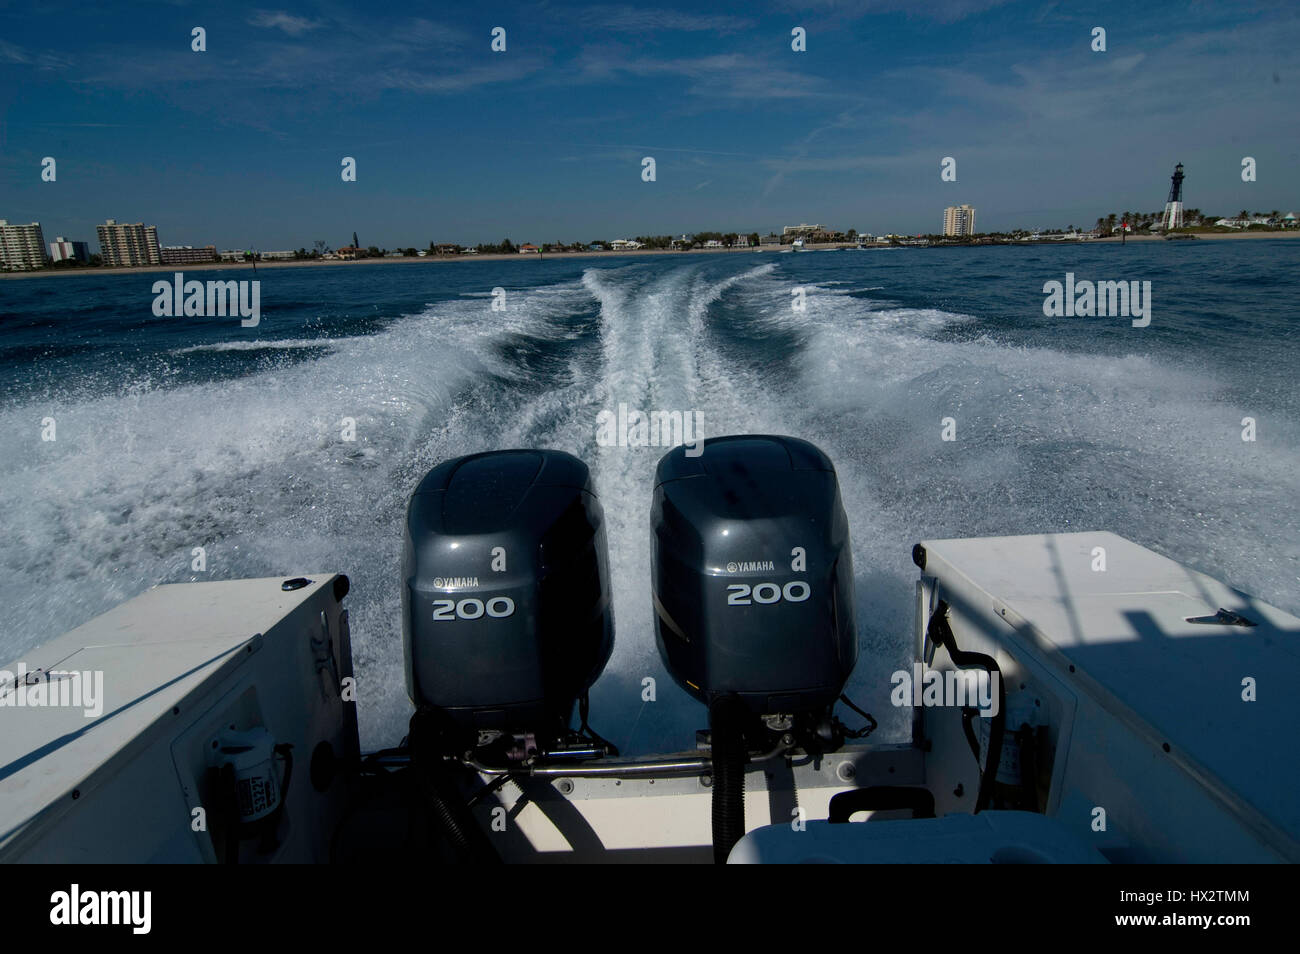 twin 200 hp outboard motors - Stock Image